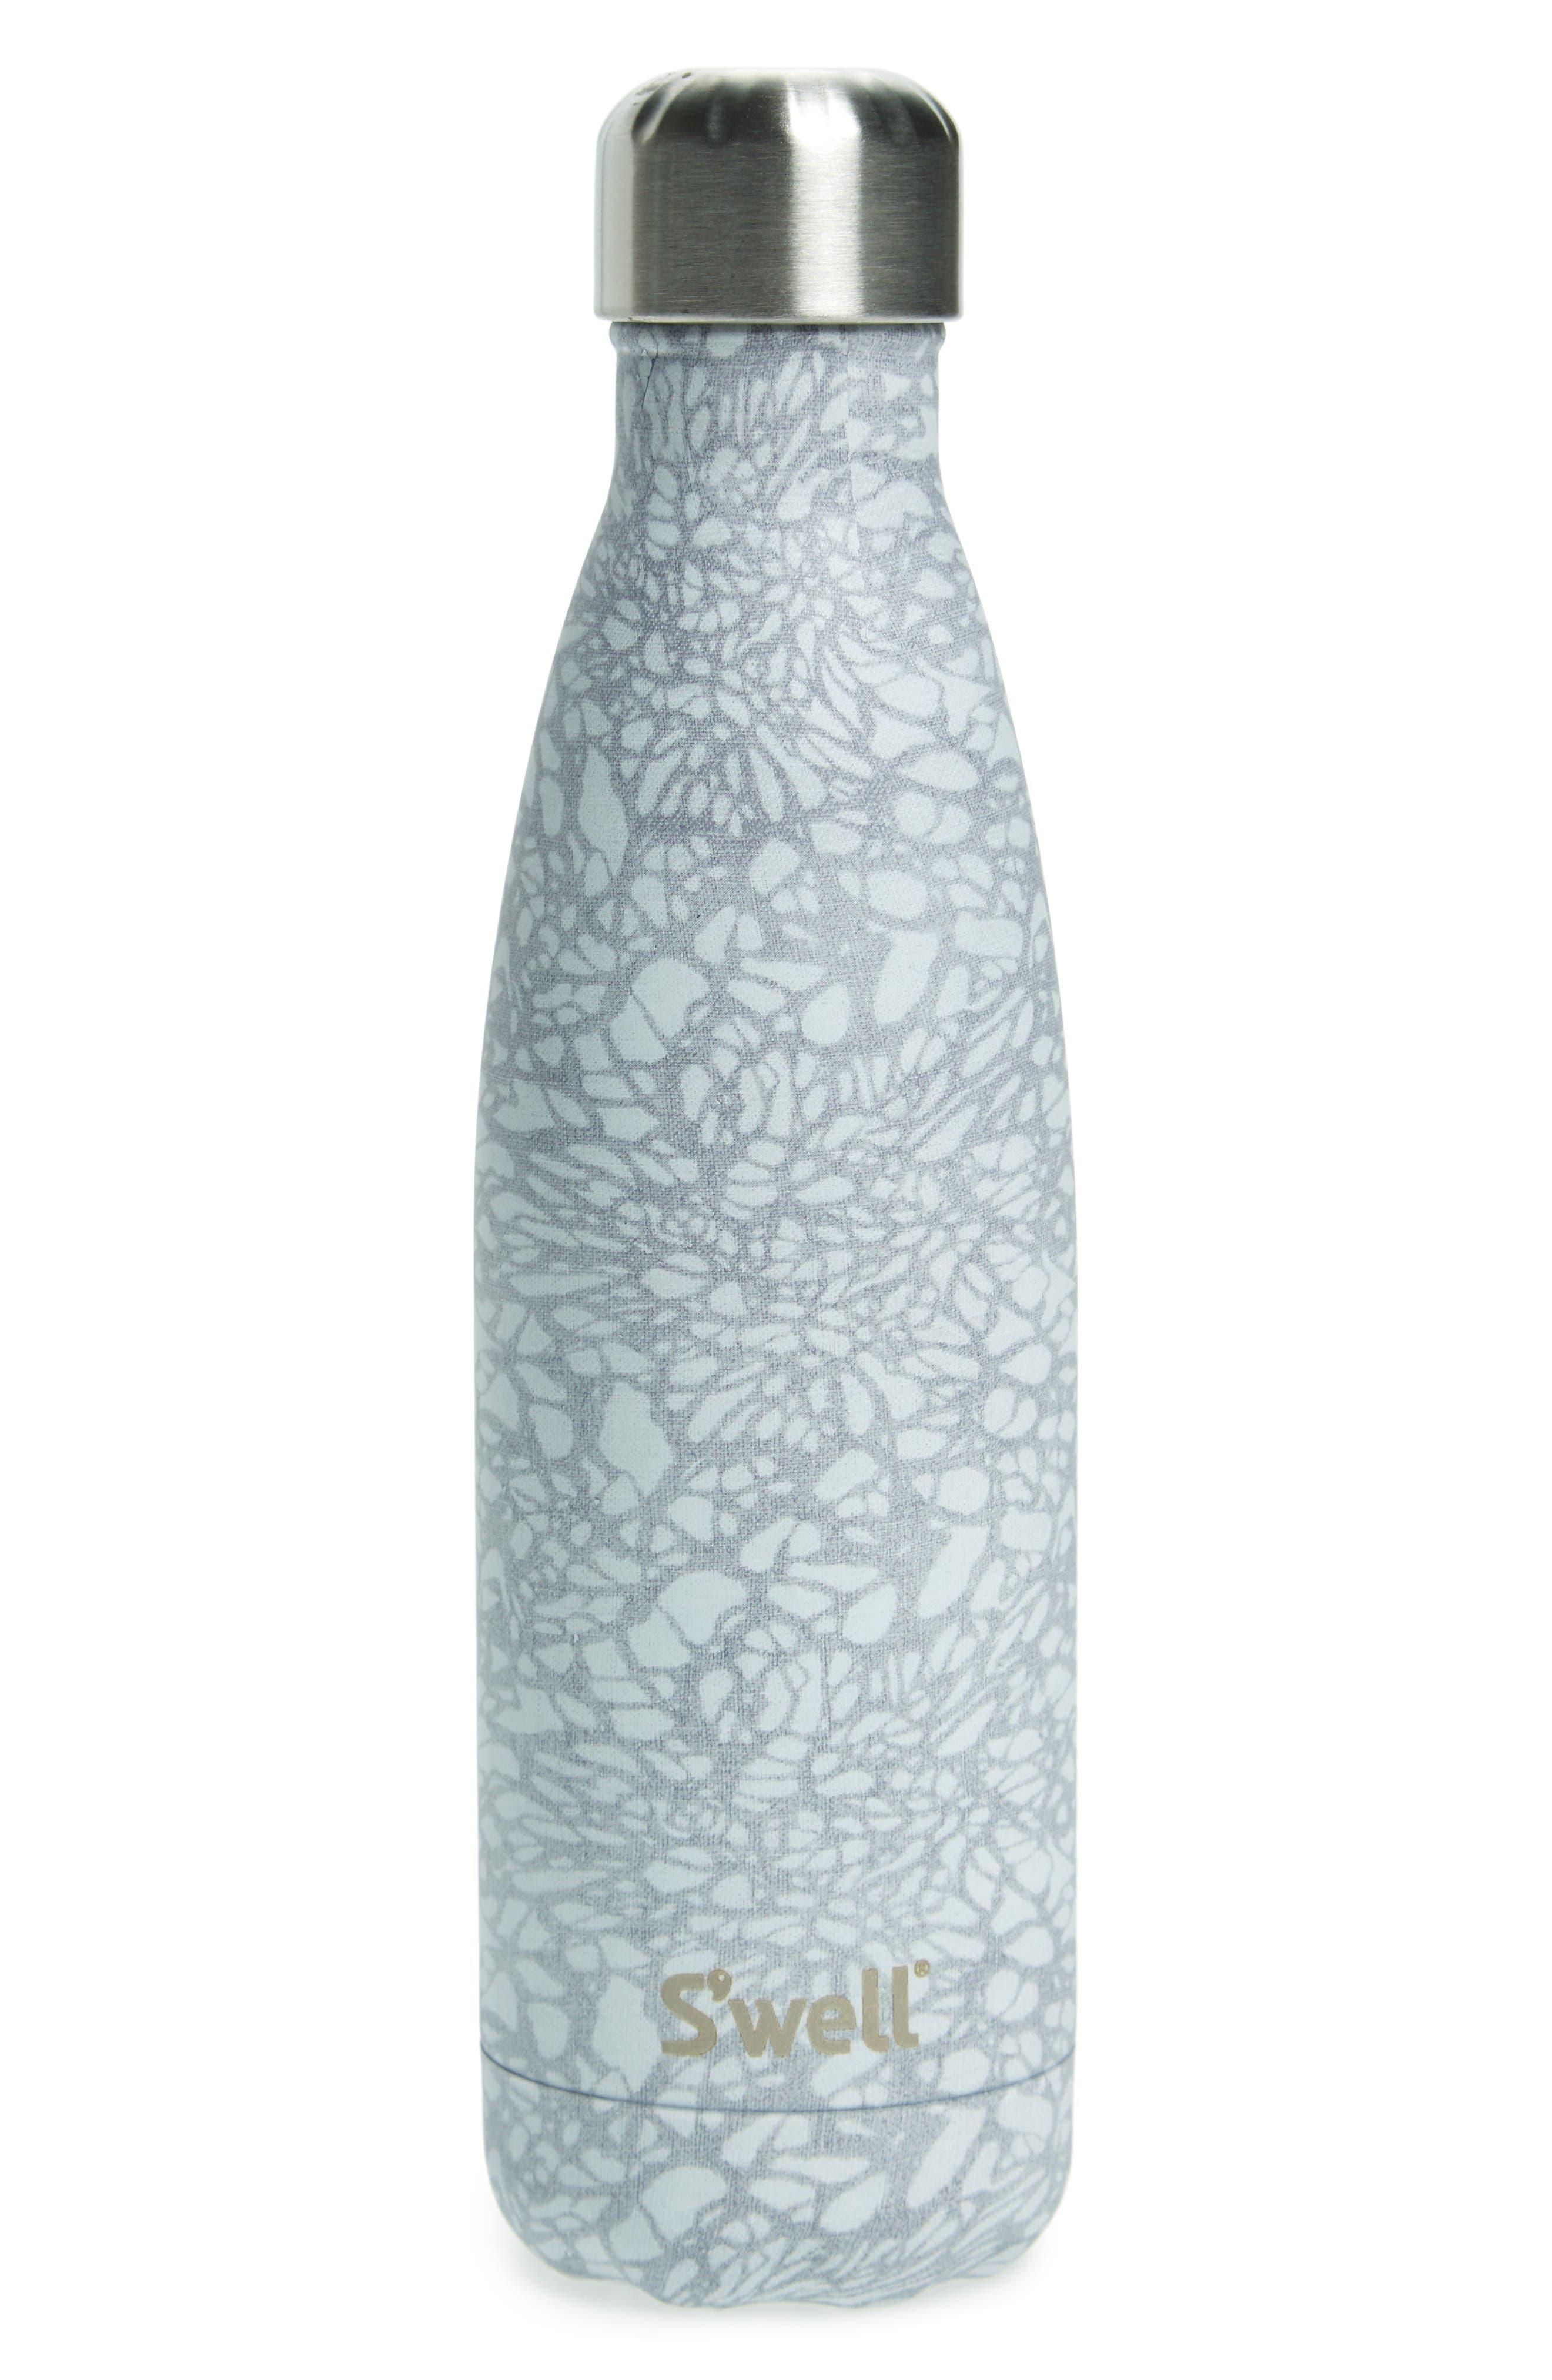 Alternate Image 1 Selected - S'well White Lace Insulated Stainless Steel Water Bottle